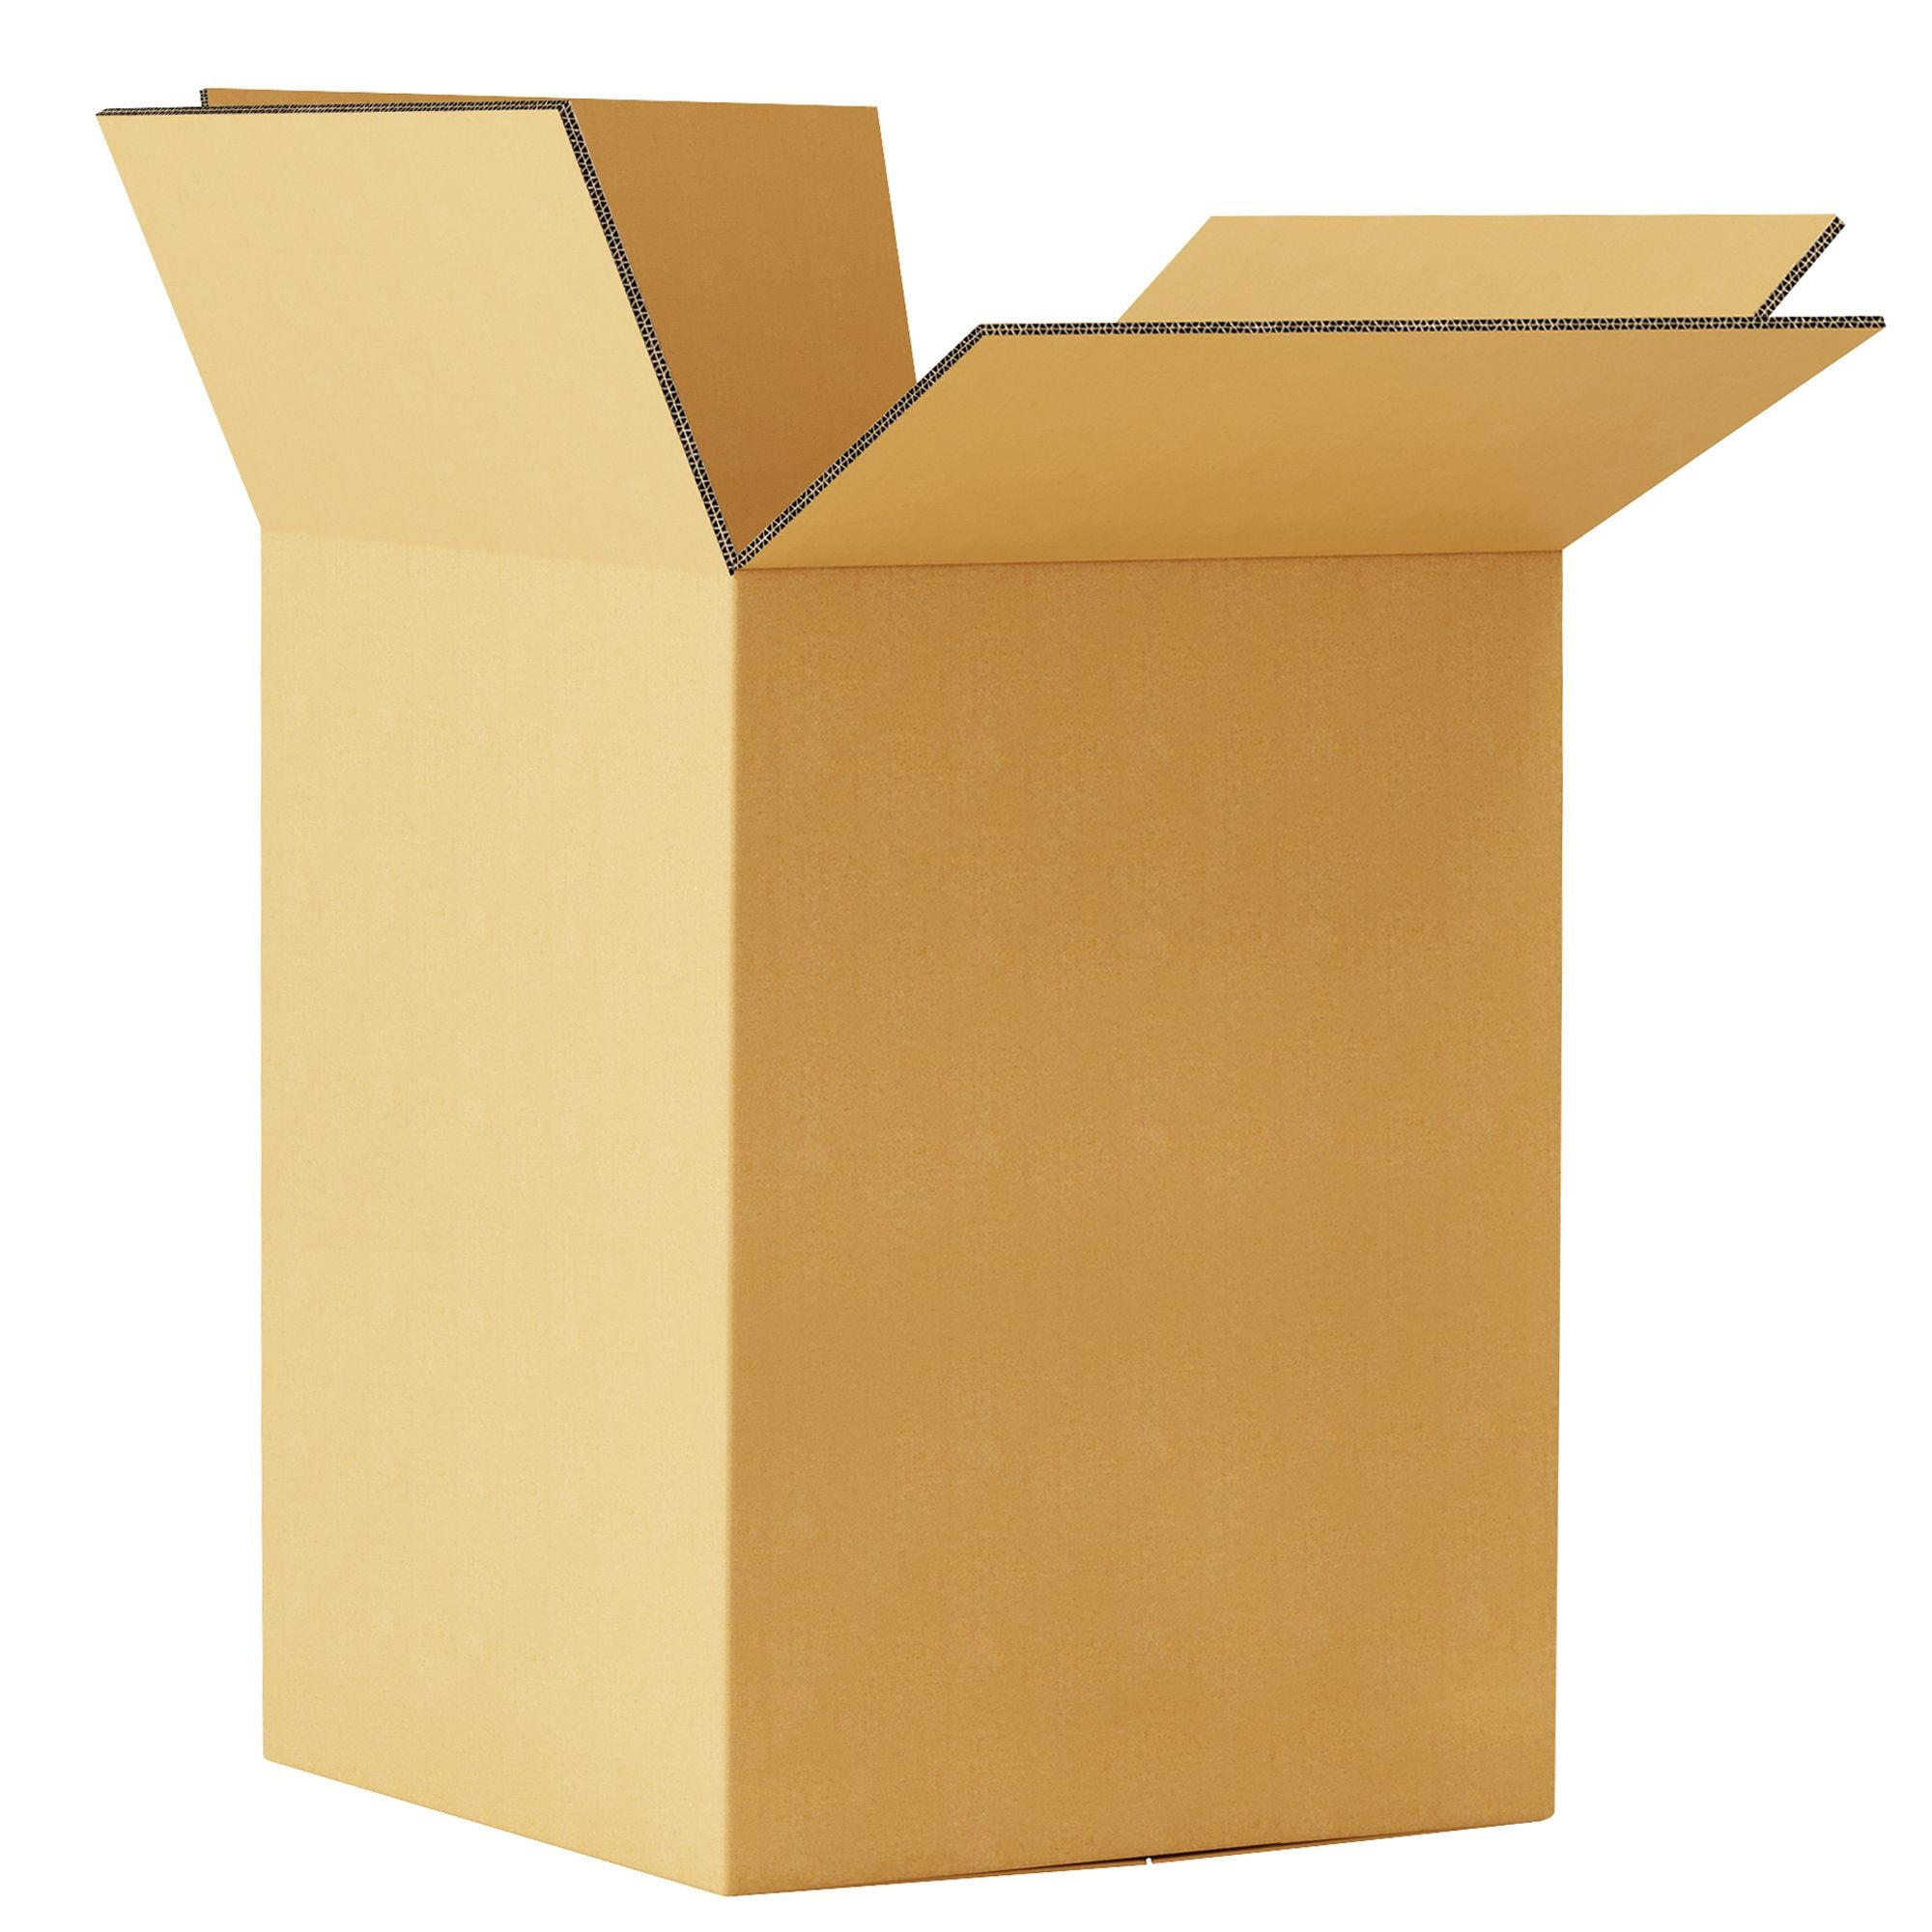 "TOTALPACK® 24 x 24 x 32-36"" Double Wall Corrugated Boxes 10 Units"